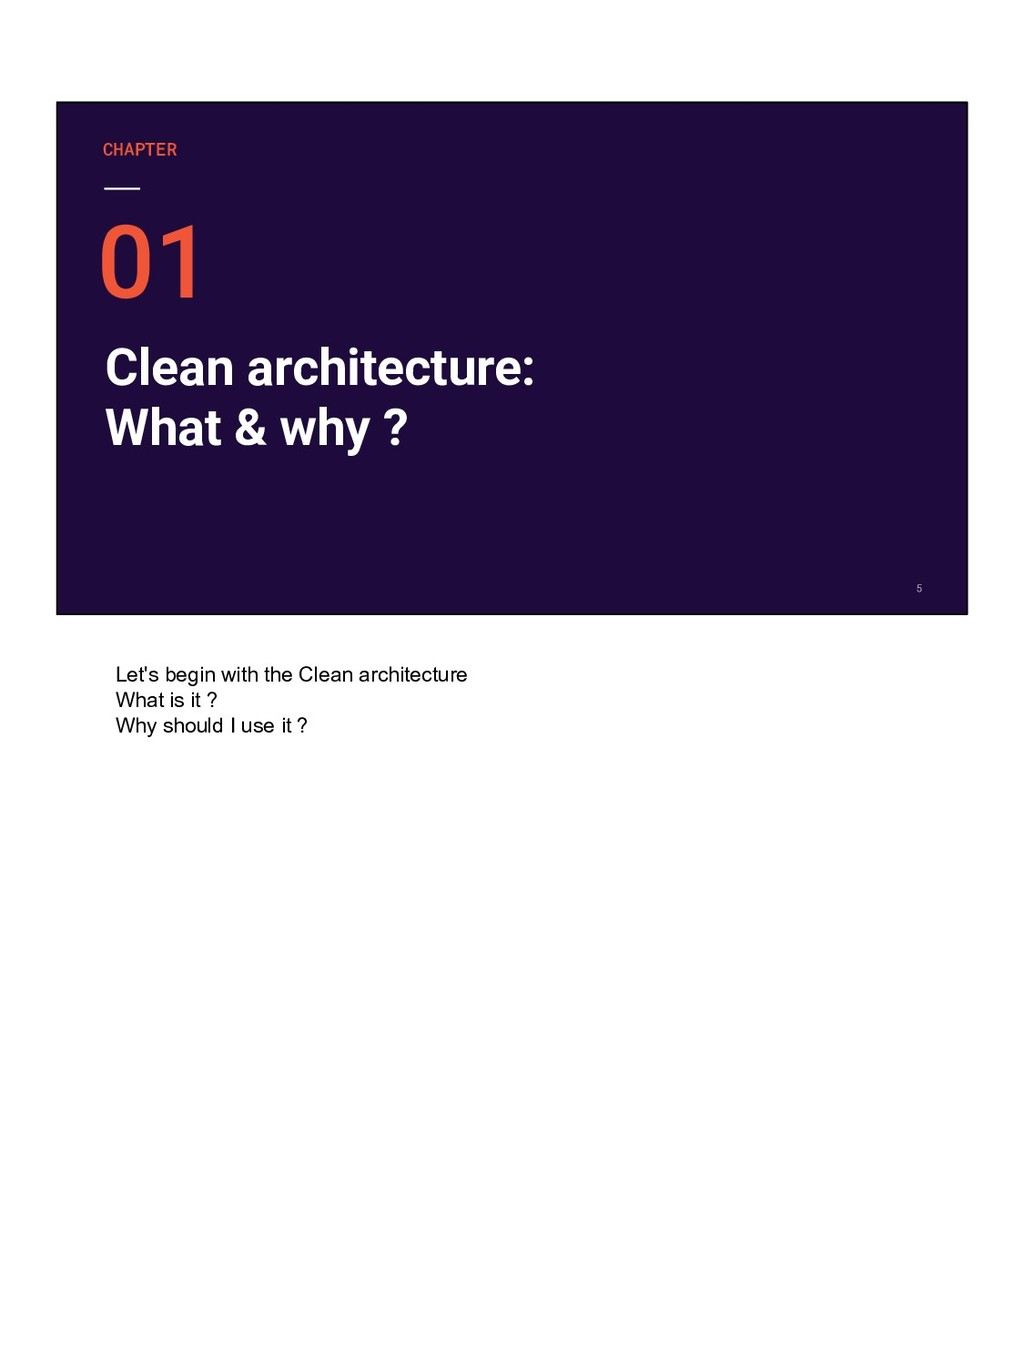 Clean architecture: What & why ? CHAPTER Let's ...